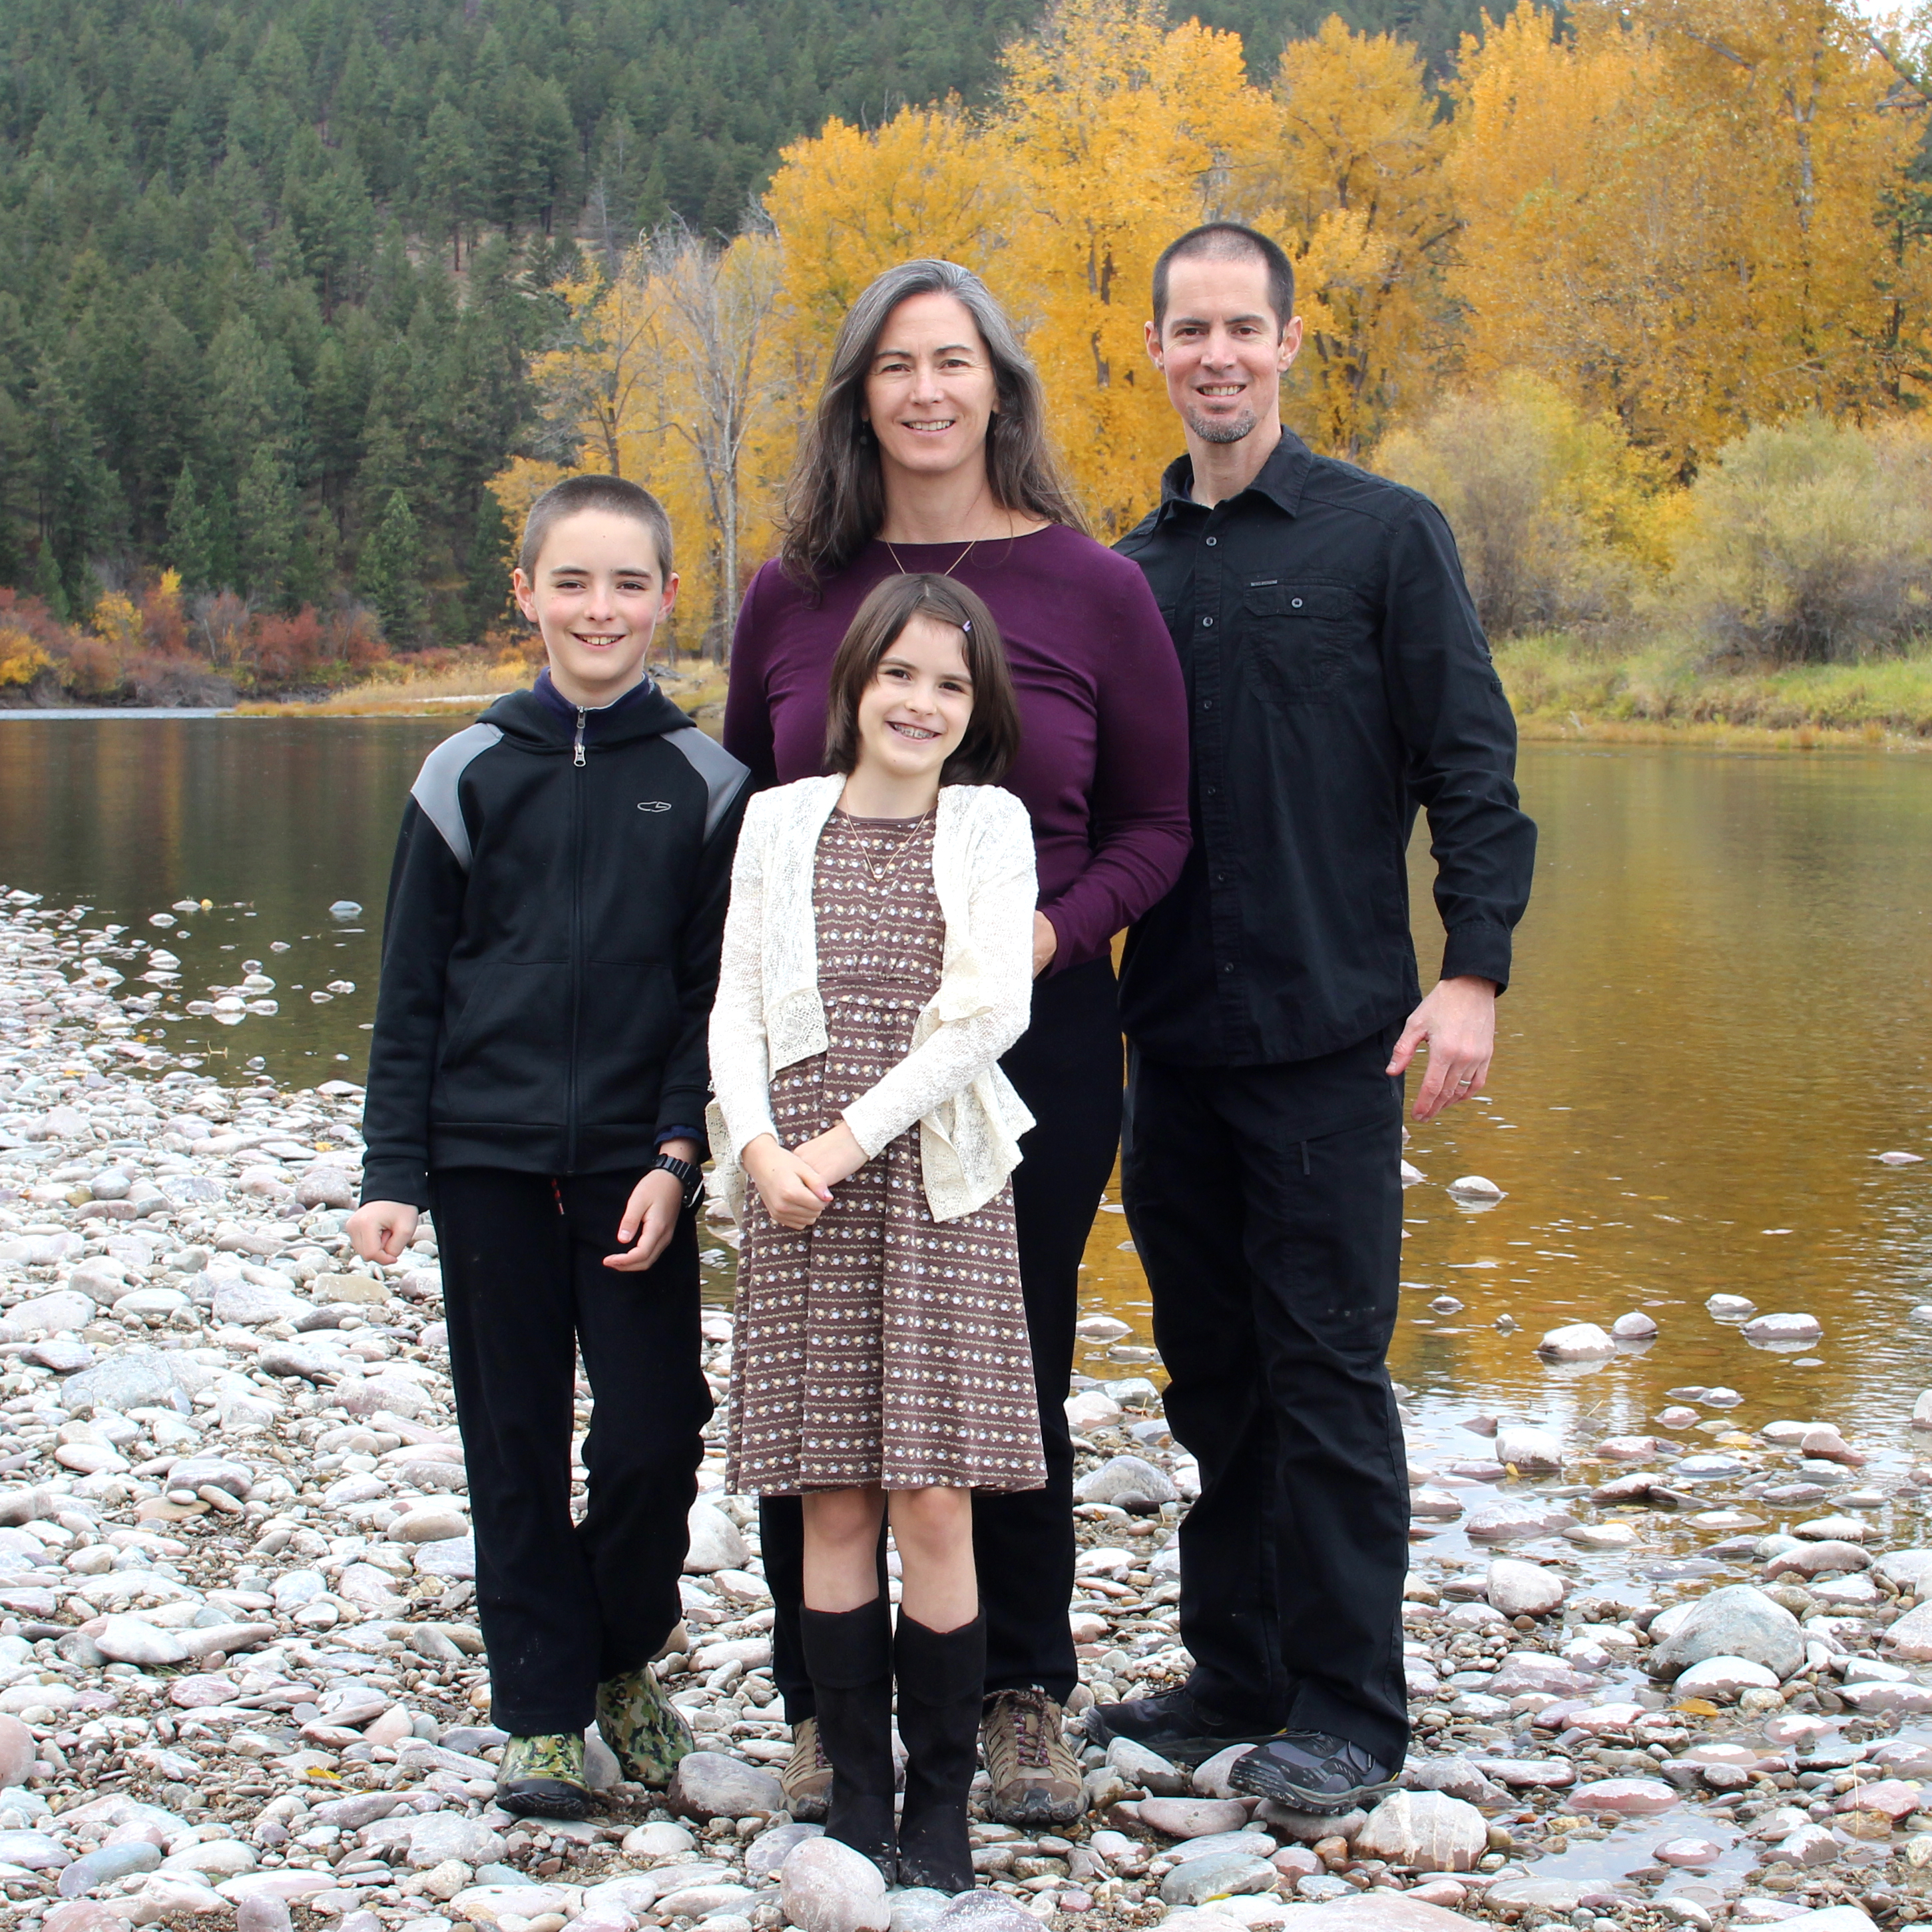 Daniel with his wife, Nyss, and two children, Kaelan and Vivian.